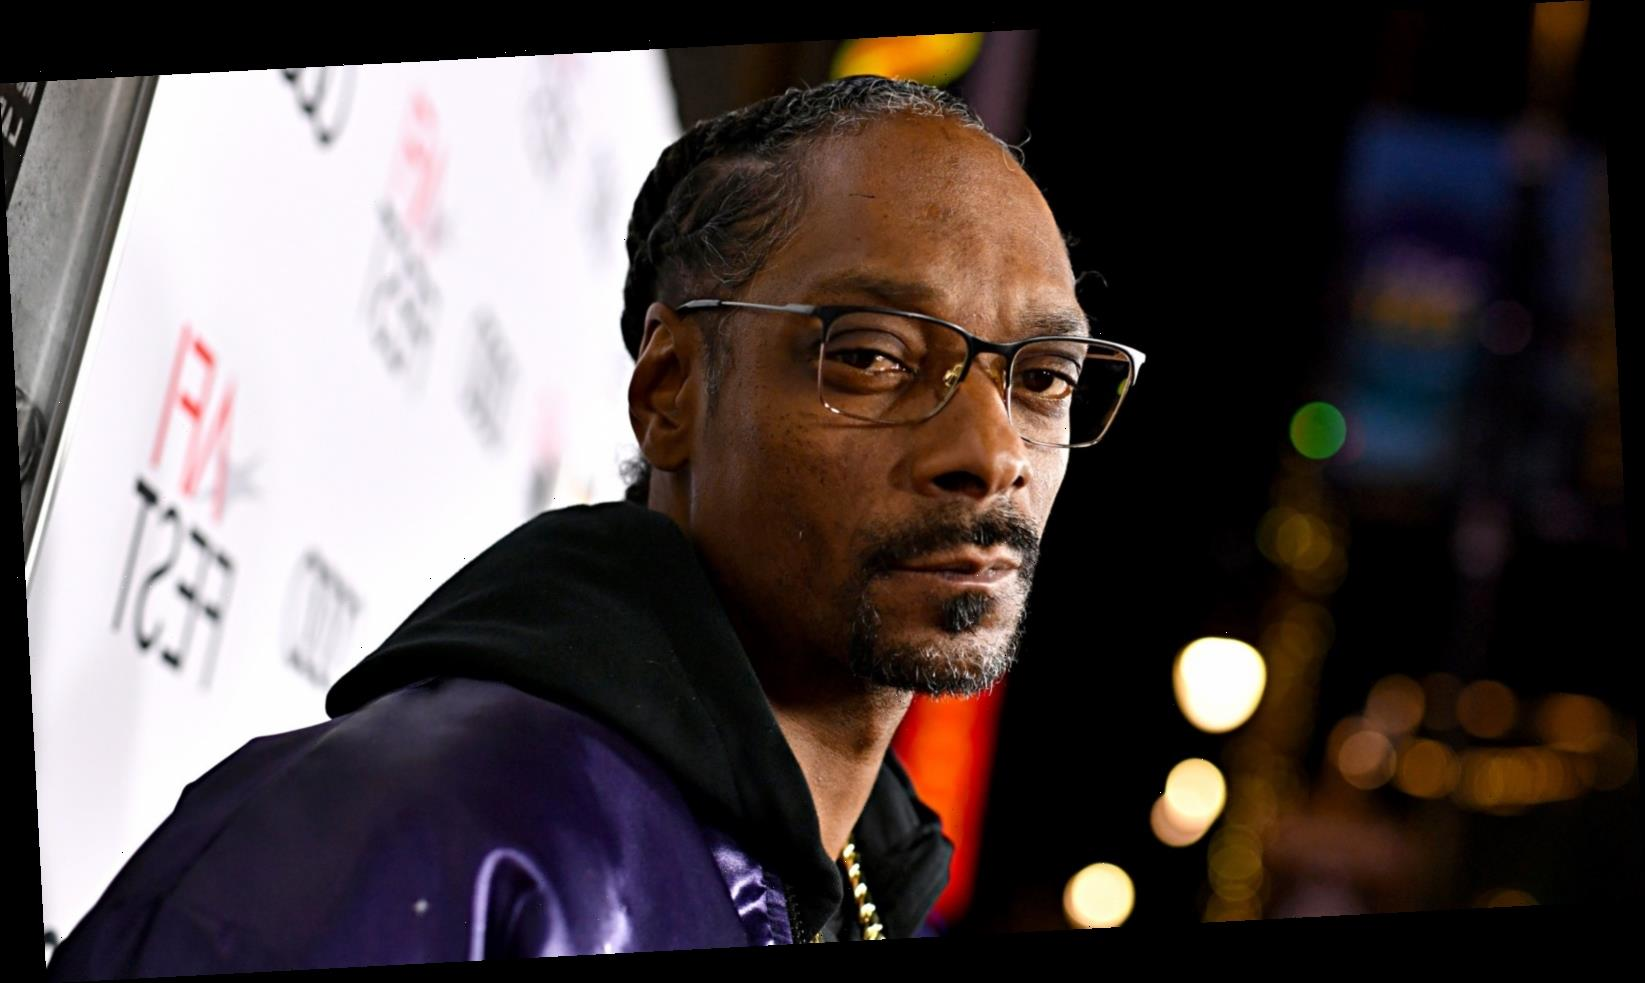 First-time voter Snoop Dogg is not undecided in 2020